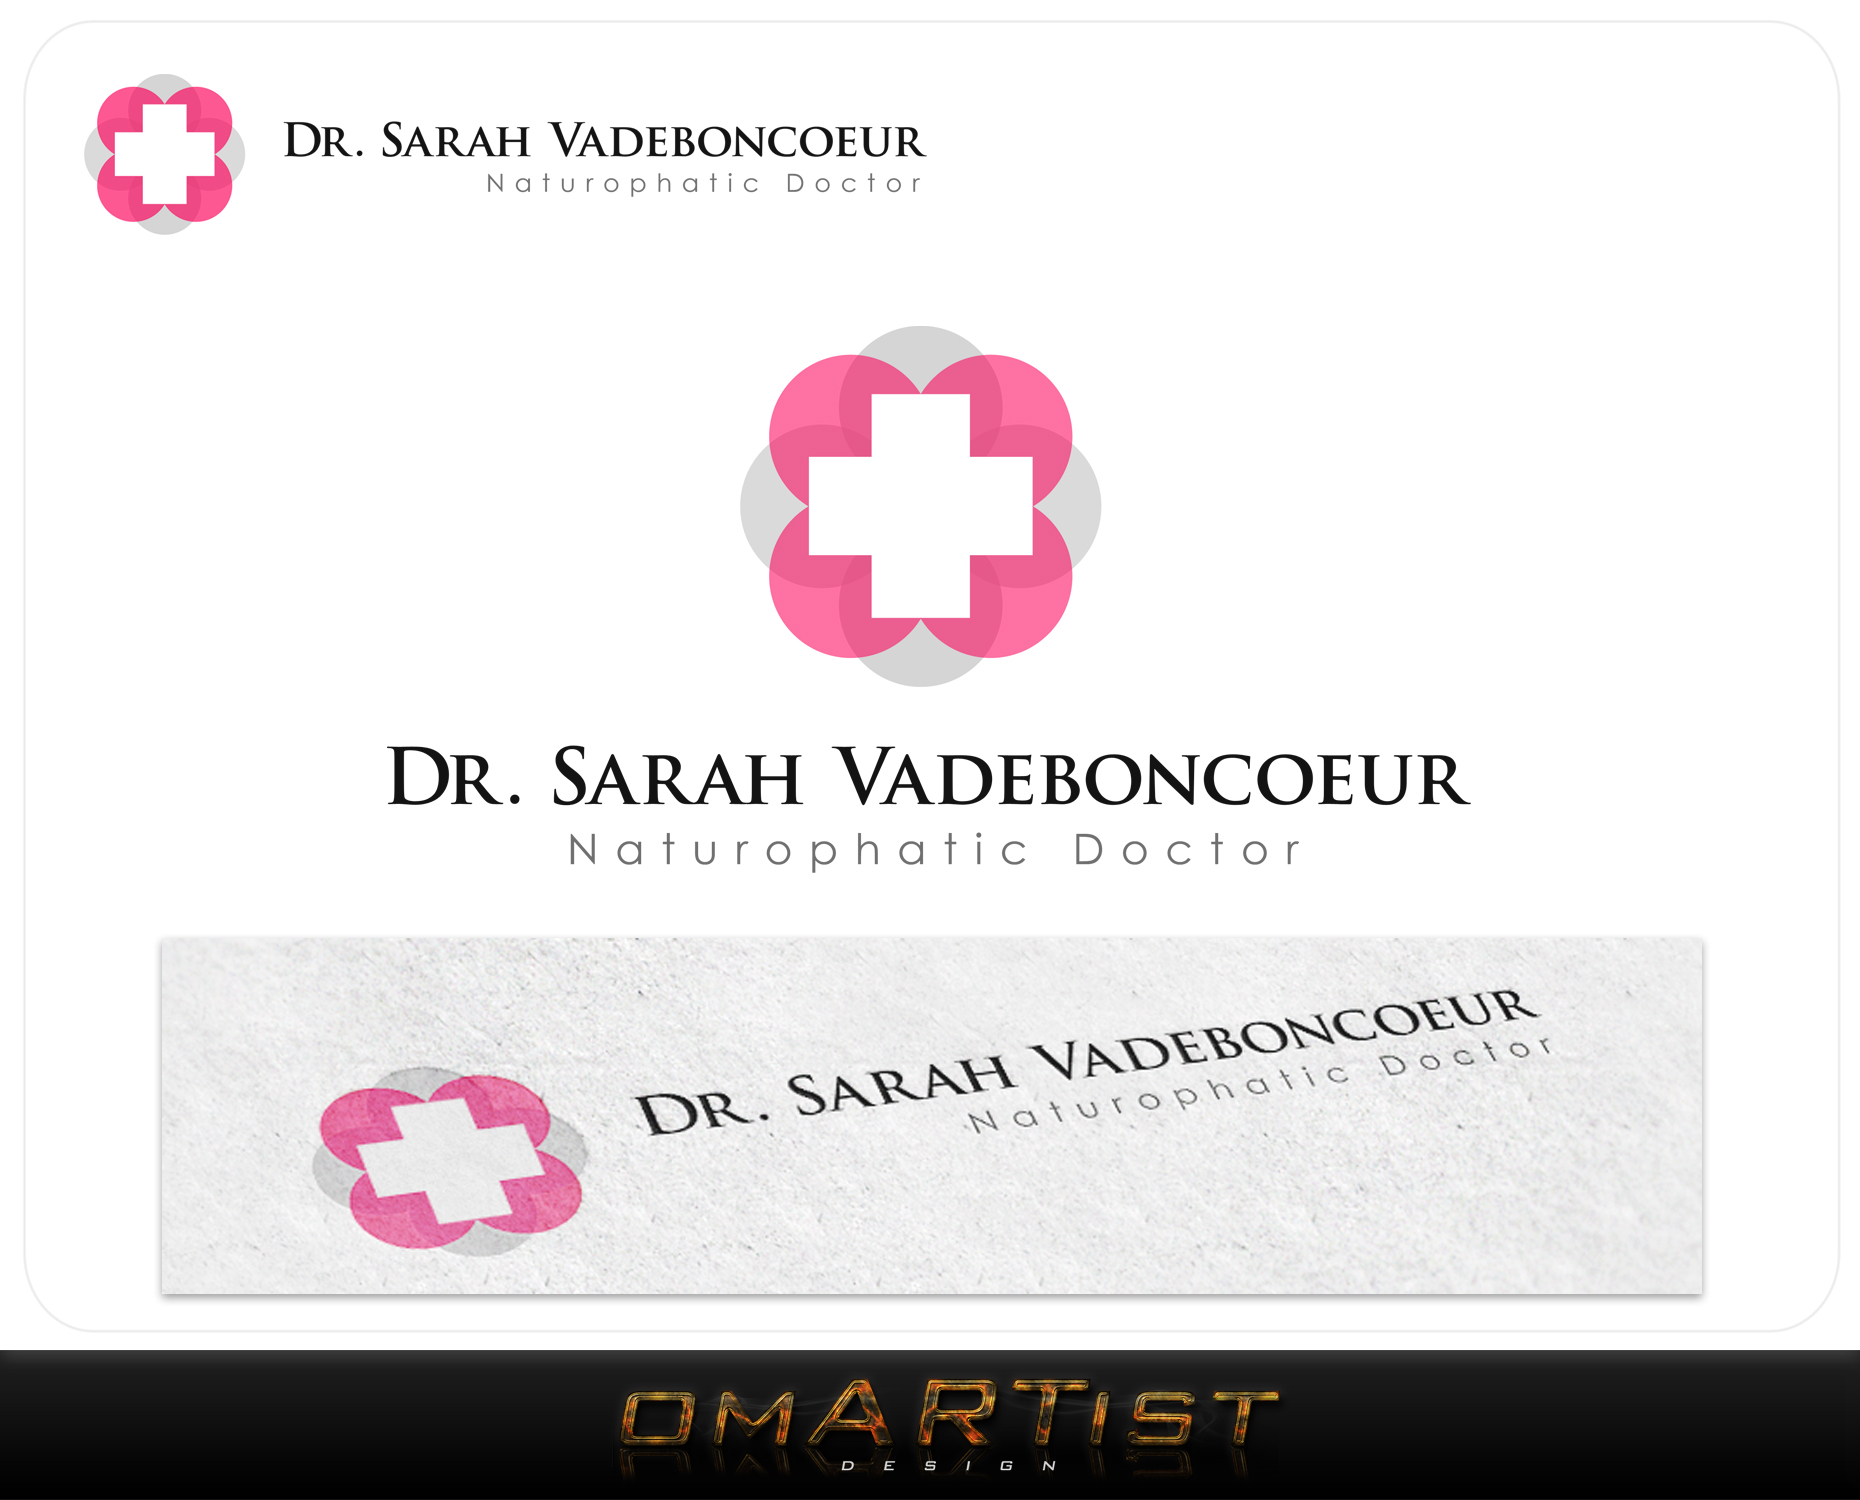 Logo Design by omARTist - Entry No. 37 in the Logo Design Contest New Logo Design for Dr. Sarah Vadeboncoeur, Naturopathic Doctor.